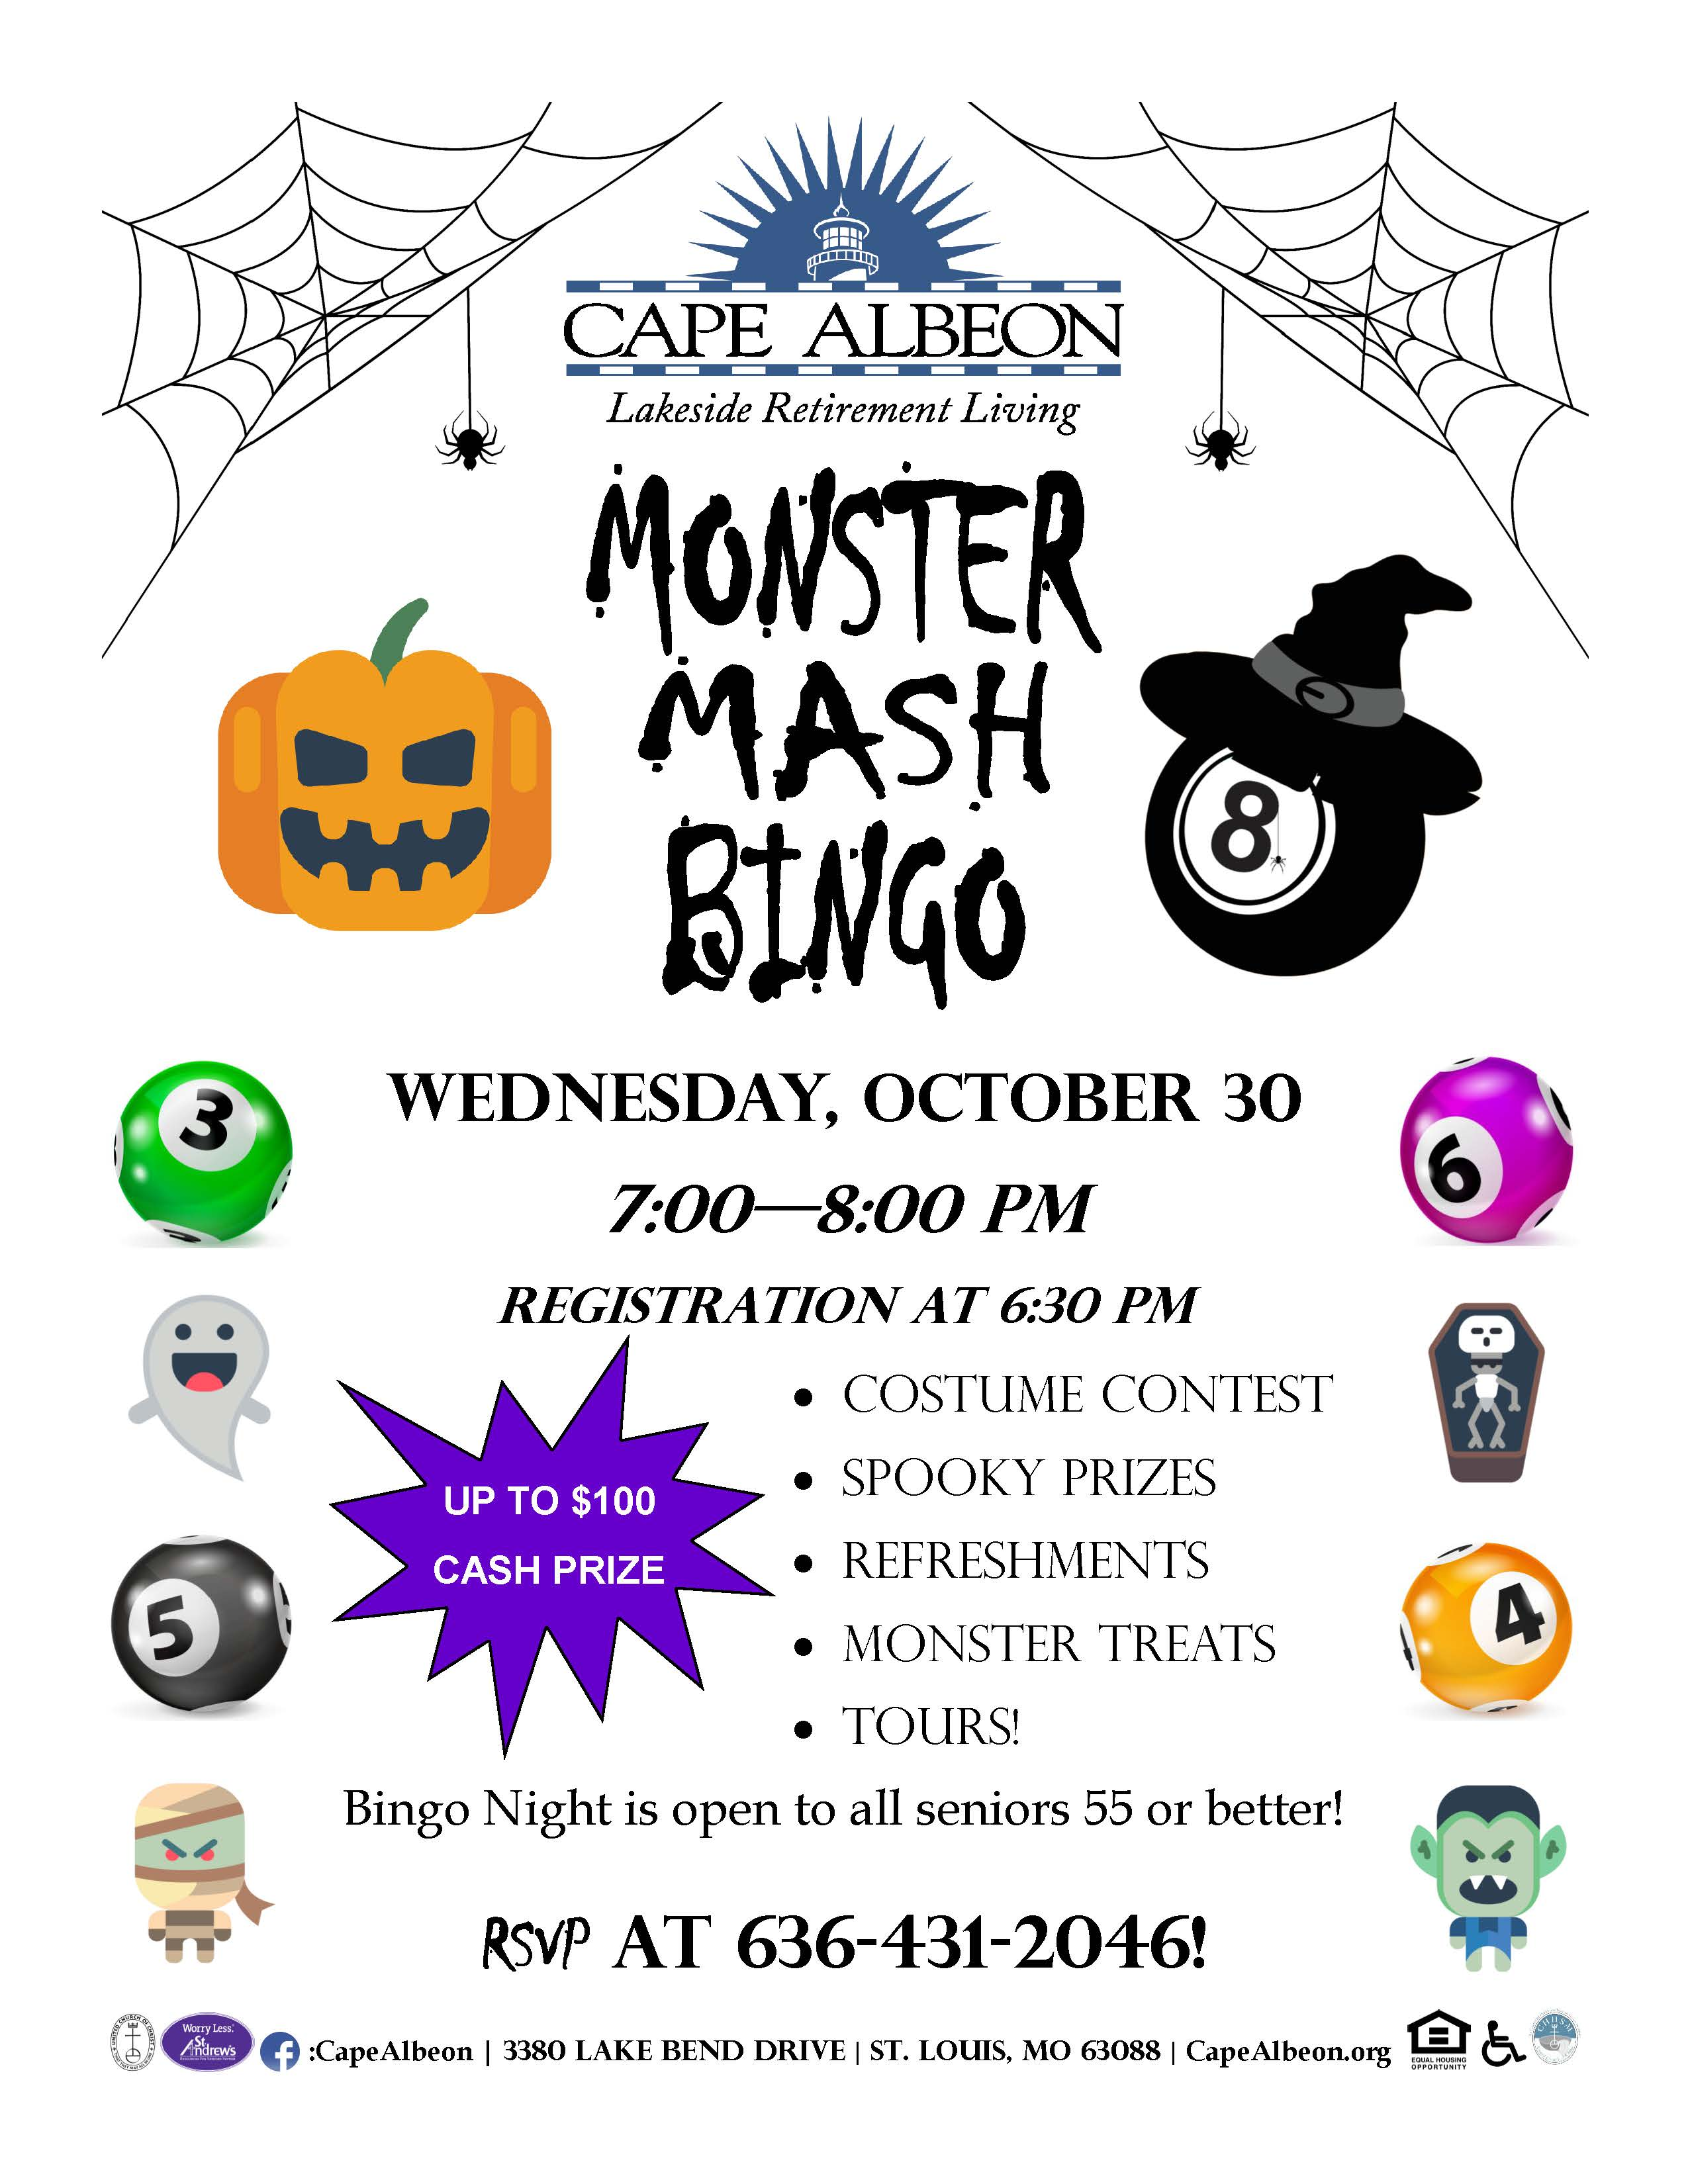 Cape Albeon hosts Monster Mash Bingo